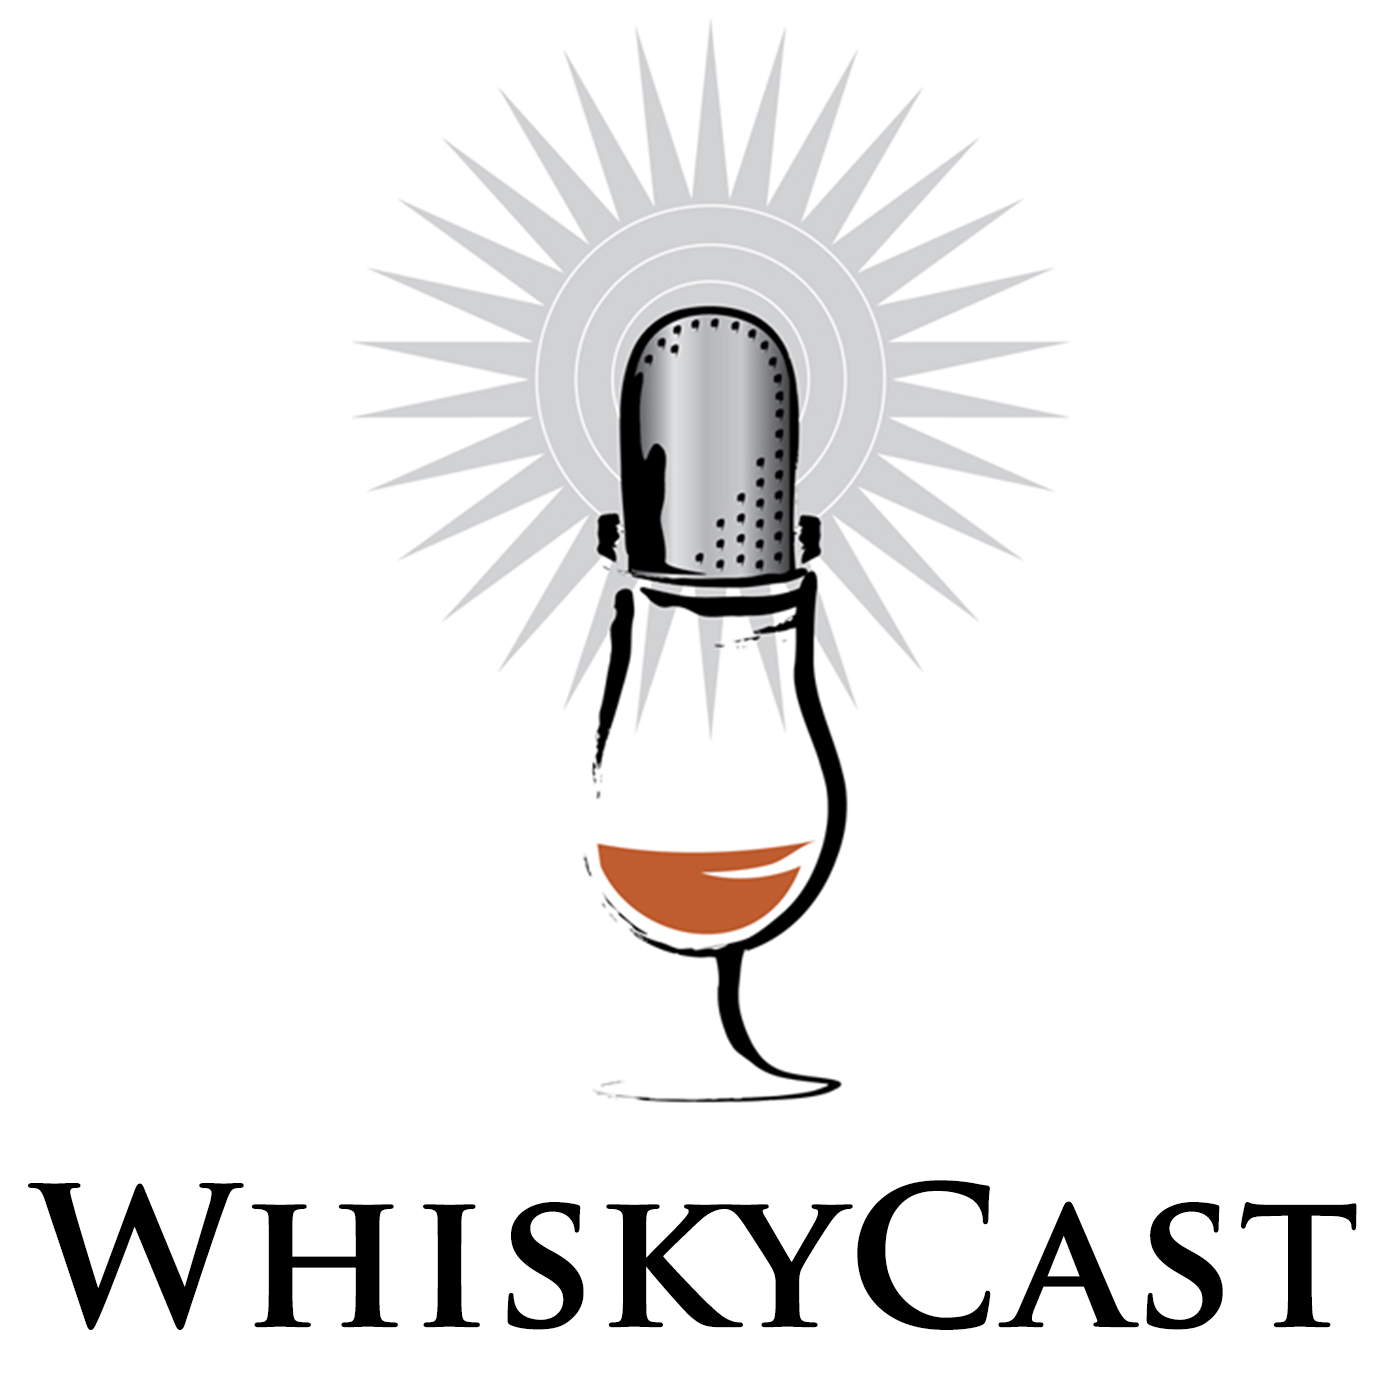 WhiskyCast Episode 485: June 27, 2014